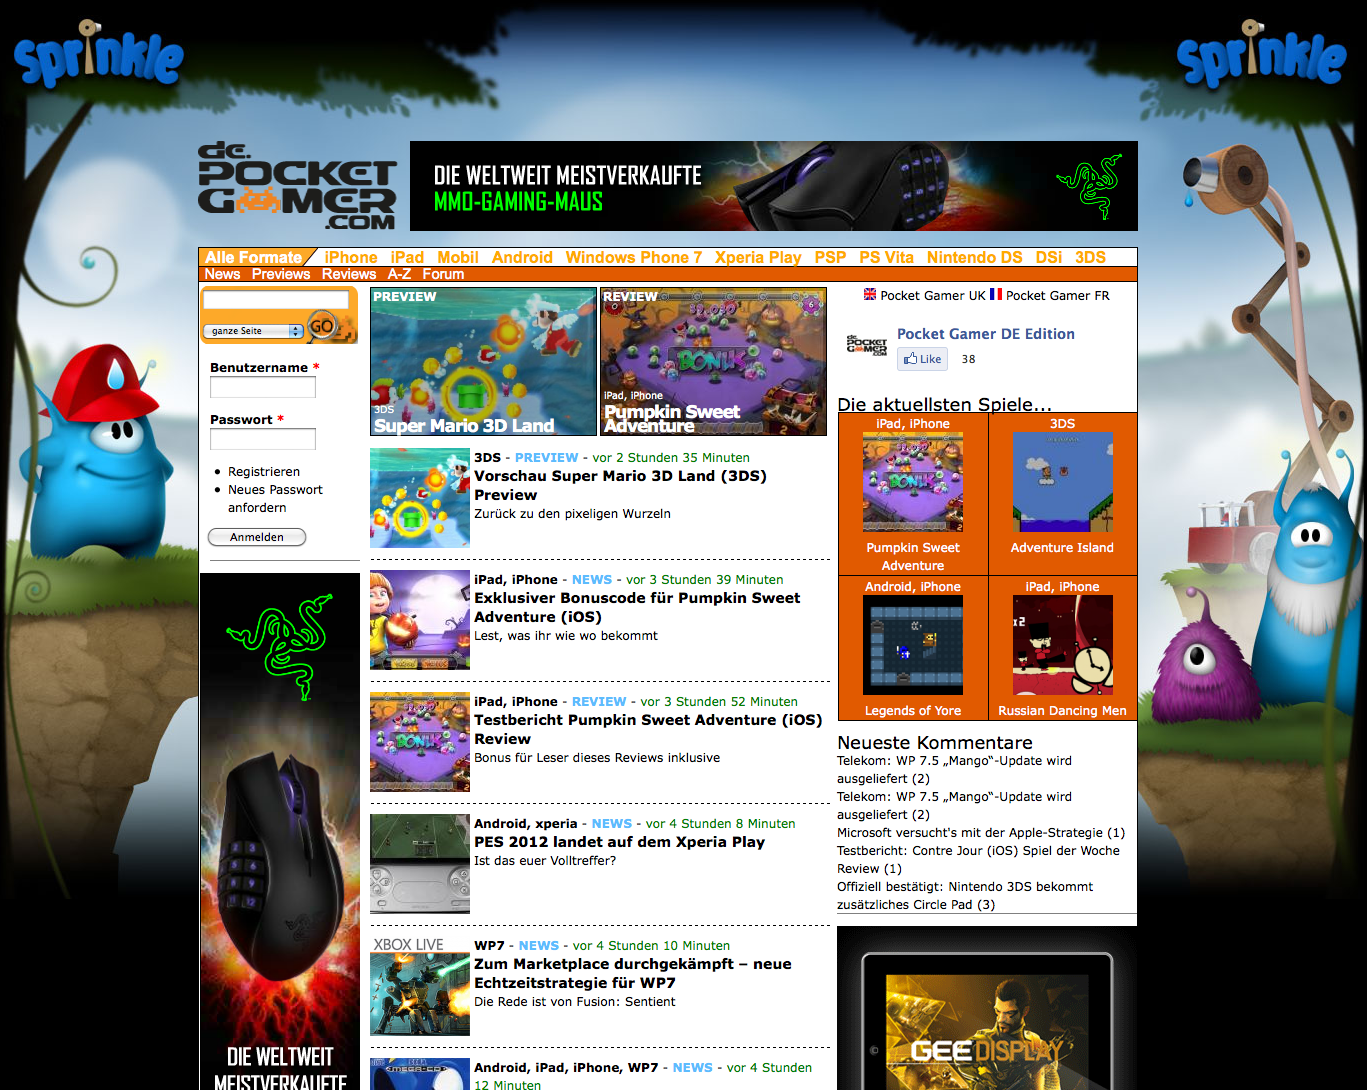 Pocket Gamer Germany is live